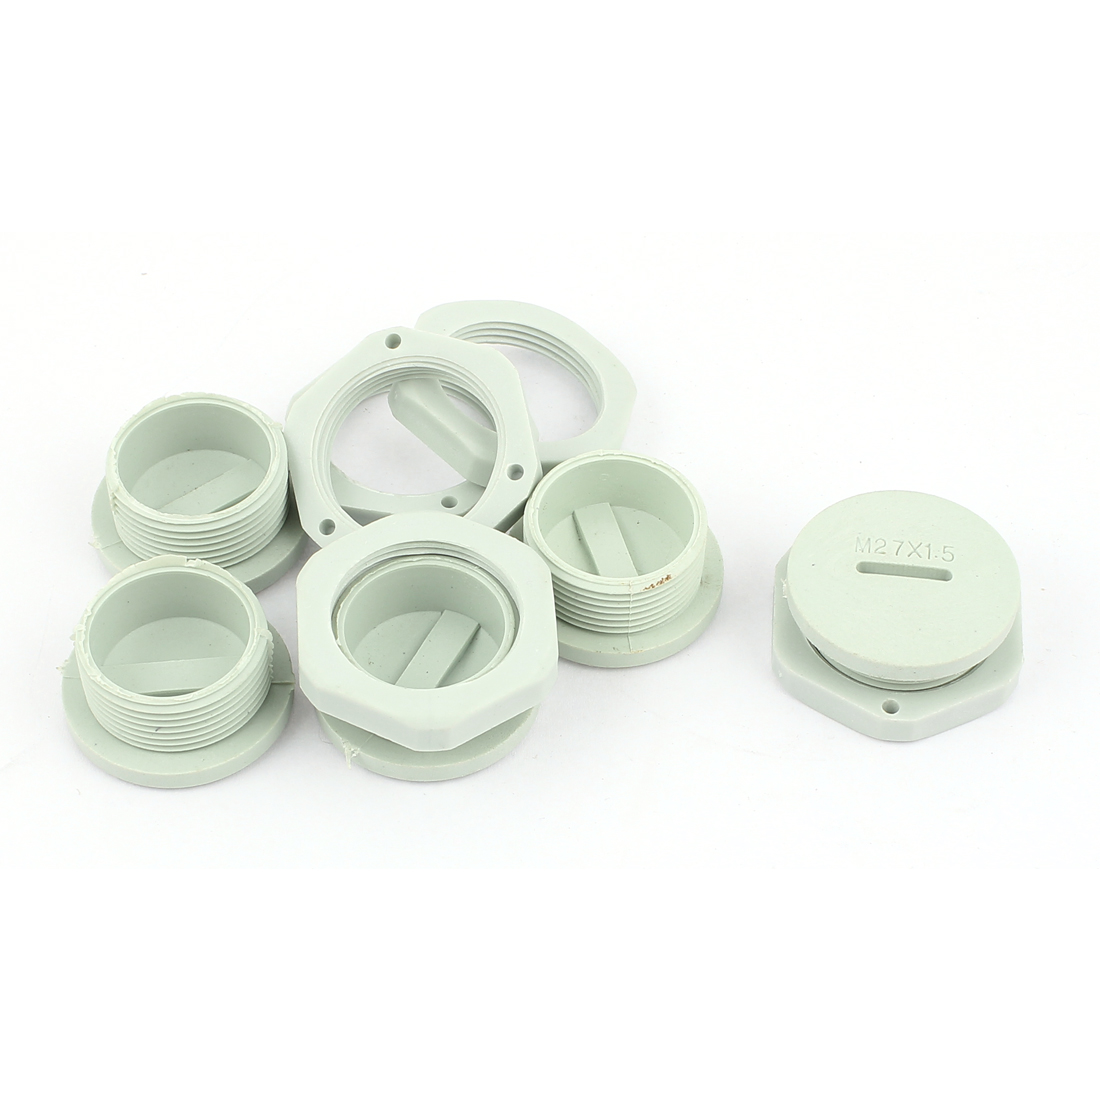 M27 x 1.5cm Plastic Round Head Pipe Plug Adapter White 5Pcs